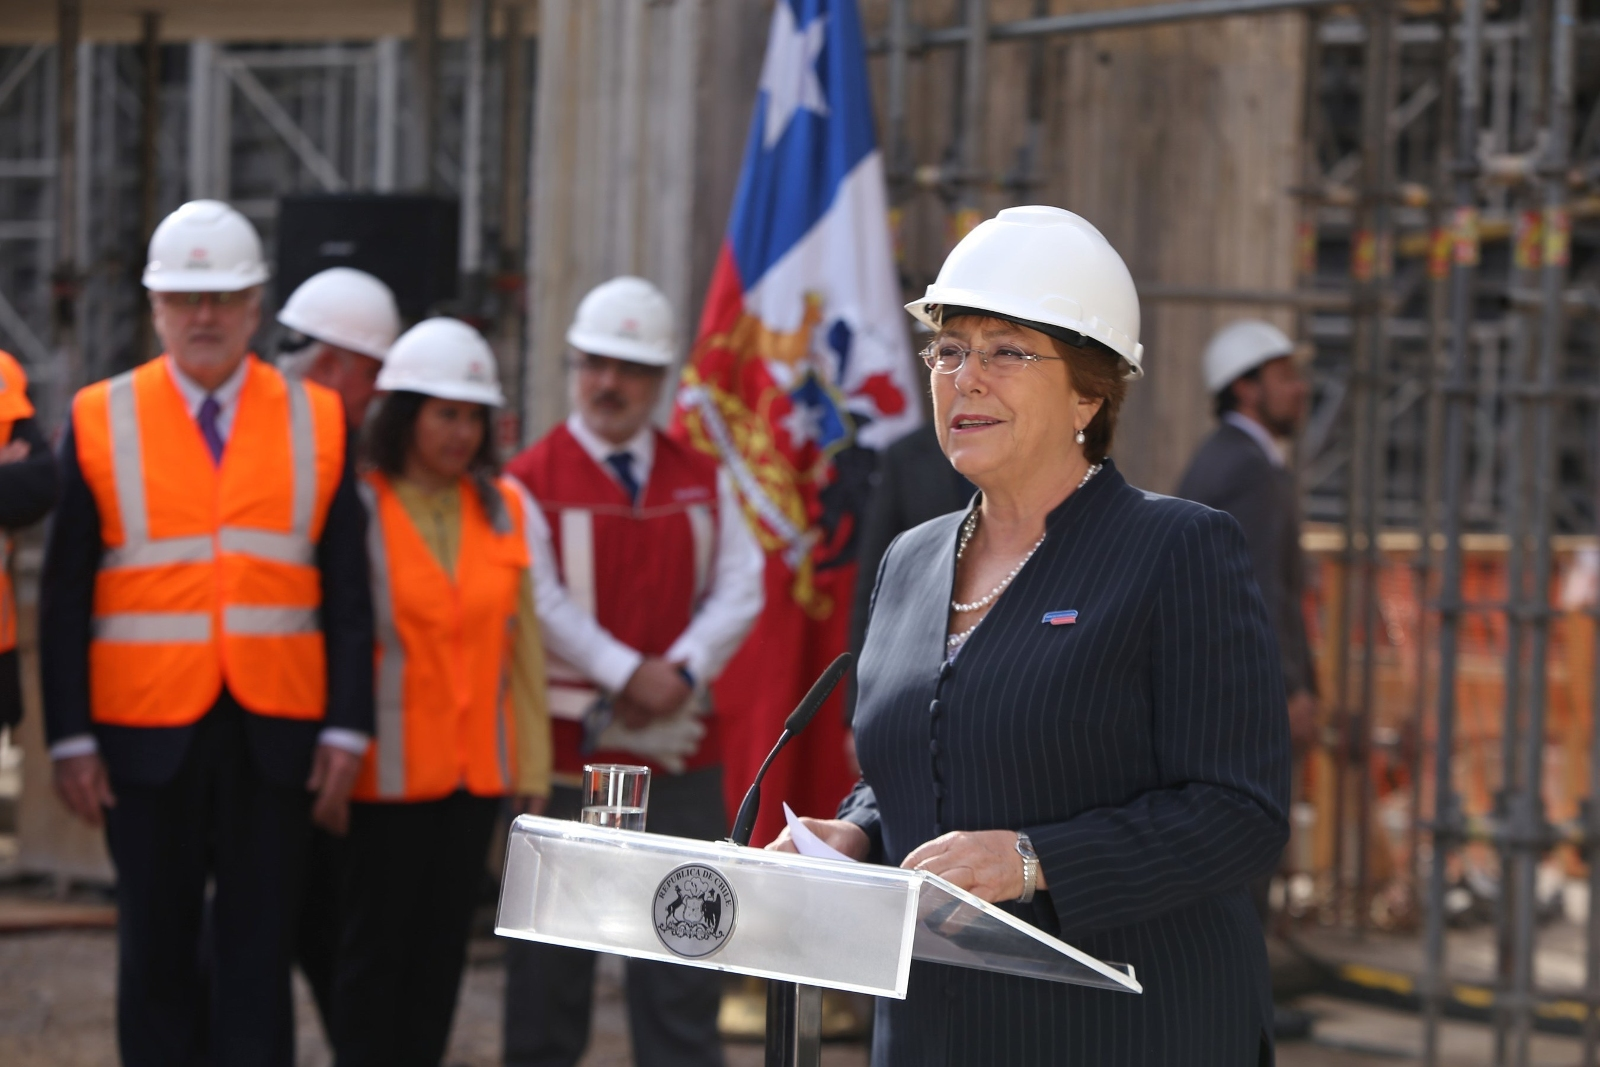 Chile President Michelle Bachelet attended the announcement on solar powering Santiago's Metro. credit: